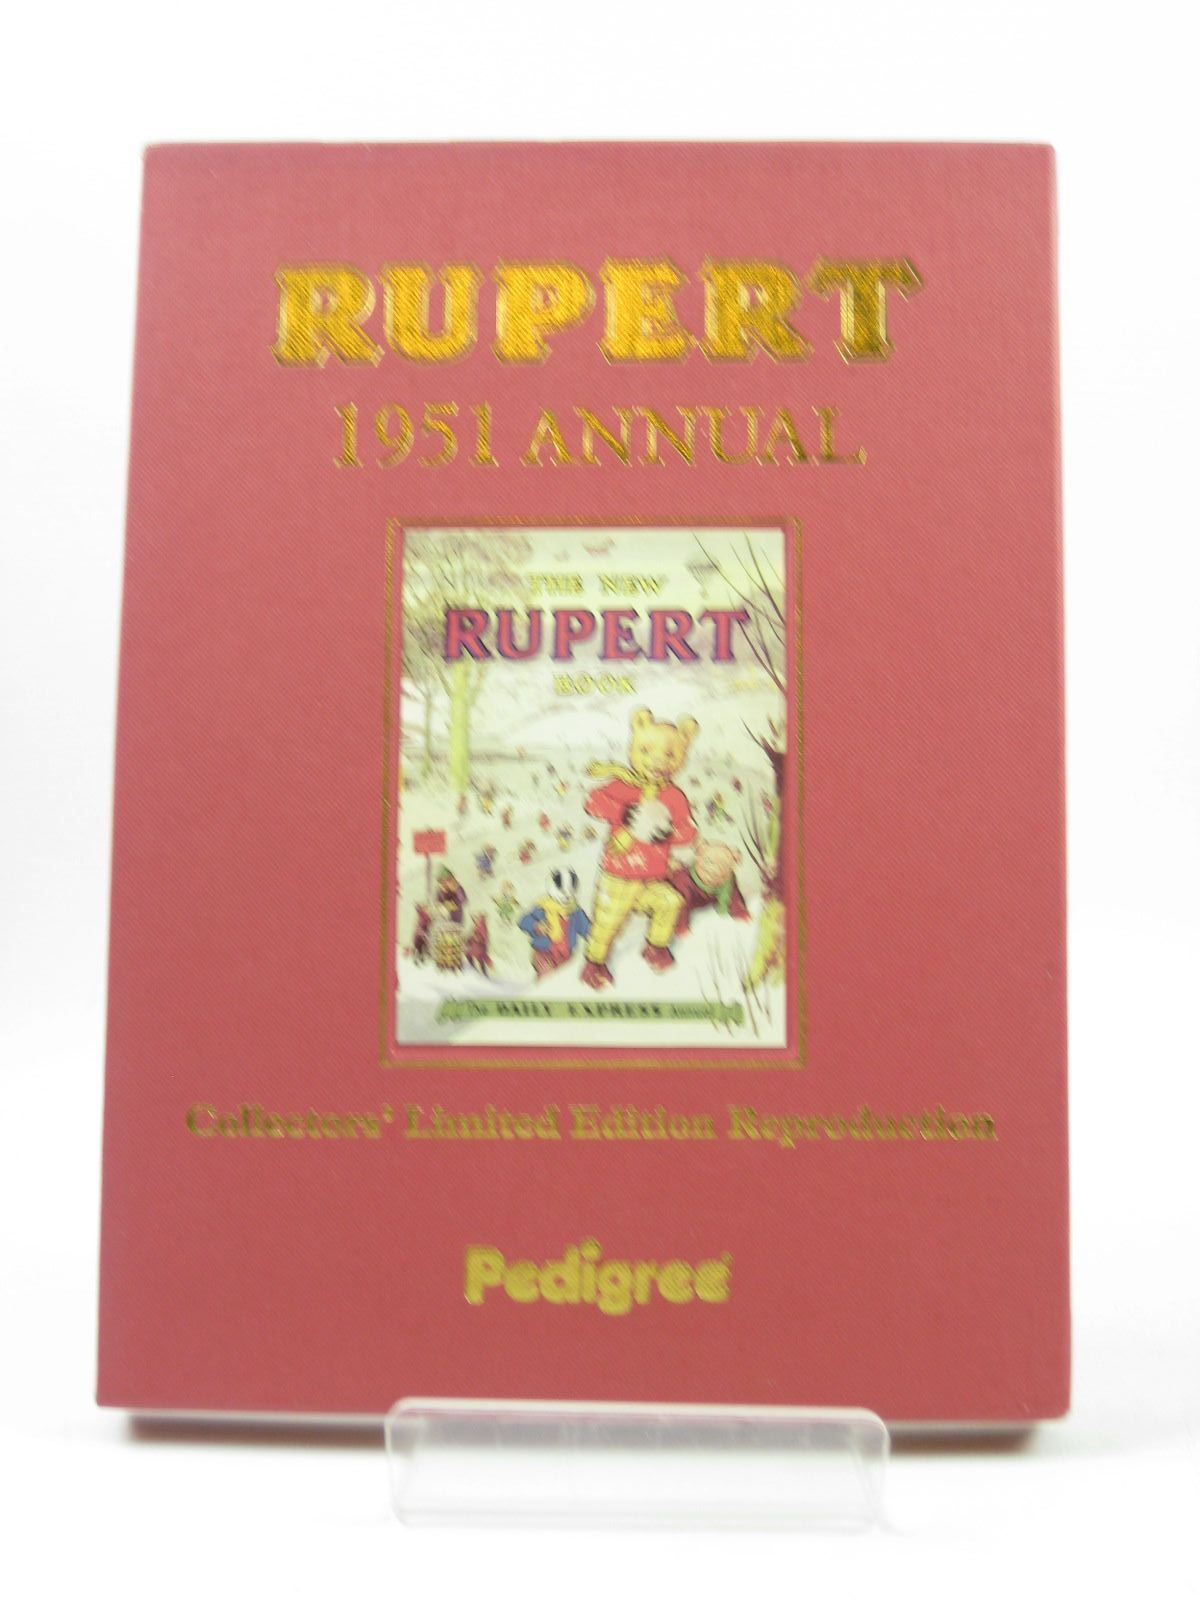 Photo of RUPERT ANNUAL 1951 (FACSIMILE) - THE NEW RUPERT BOOK written by Bestall, Alfred illustrated by Bestall, Alfred published by Pedigree Books Limited (STOCK CODE: 1503440)  for sale by Stella & Rose's Books